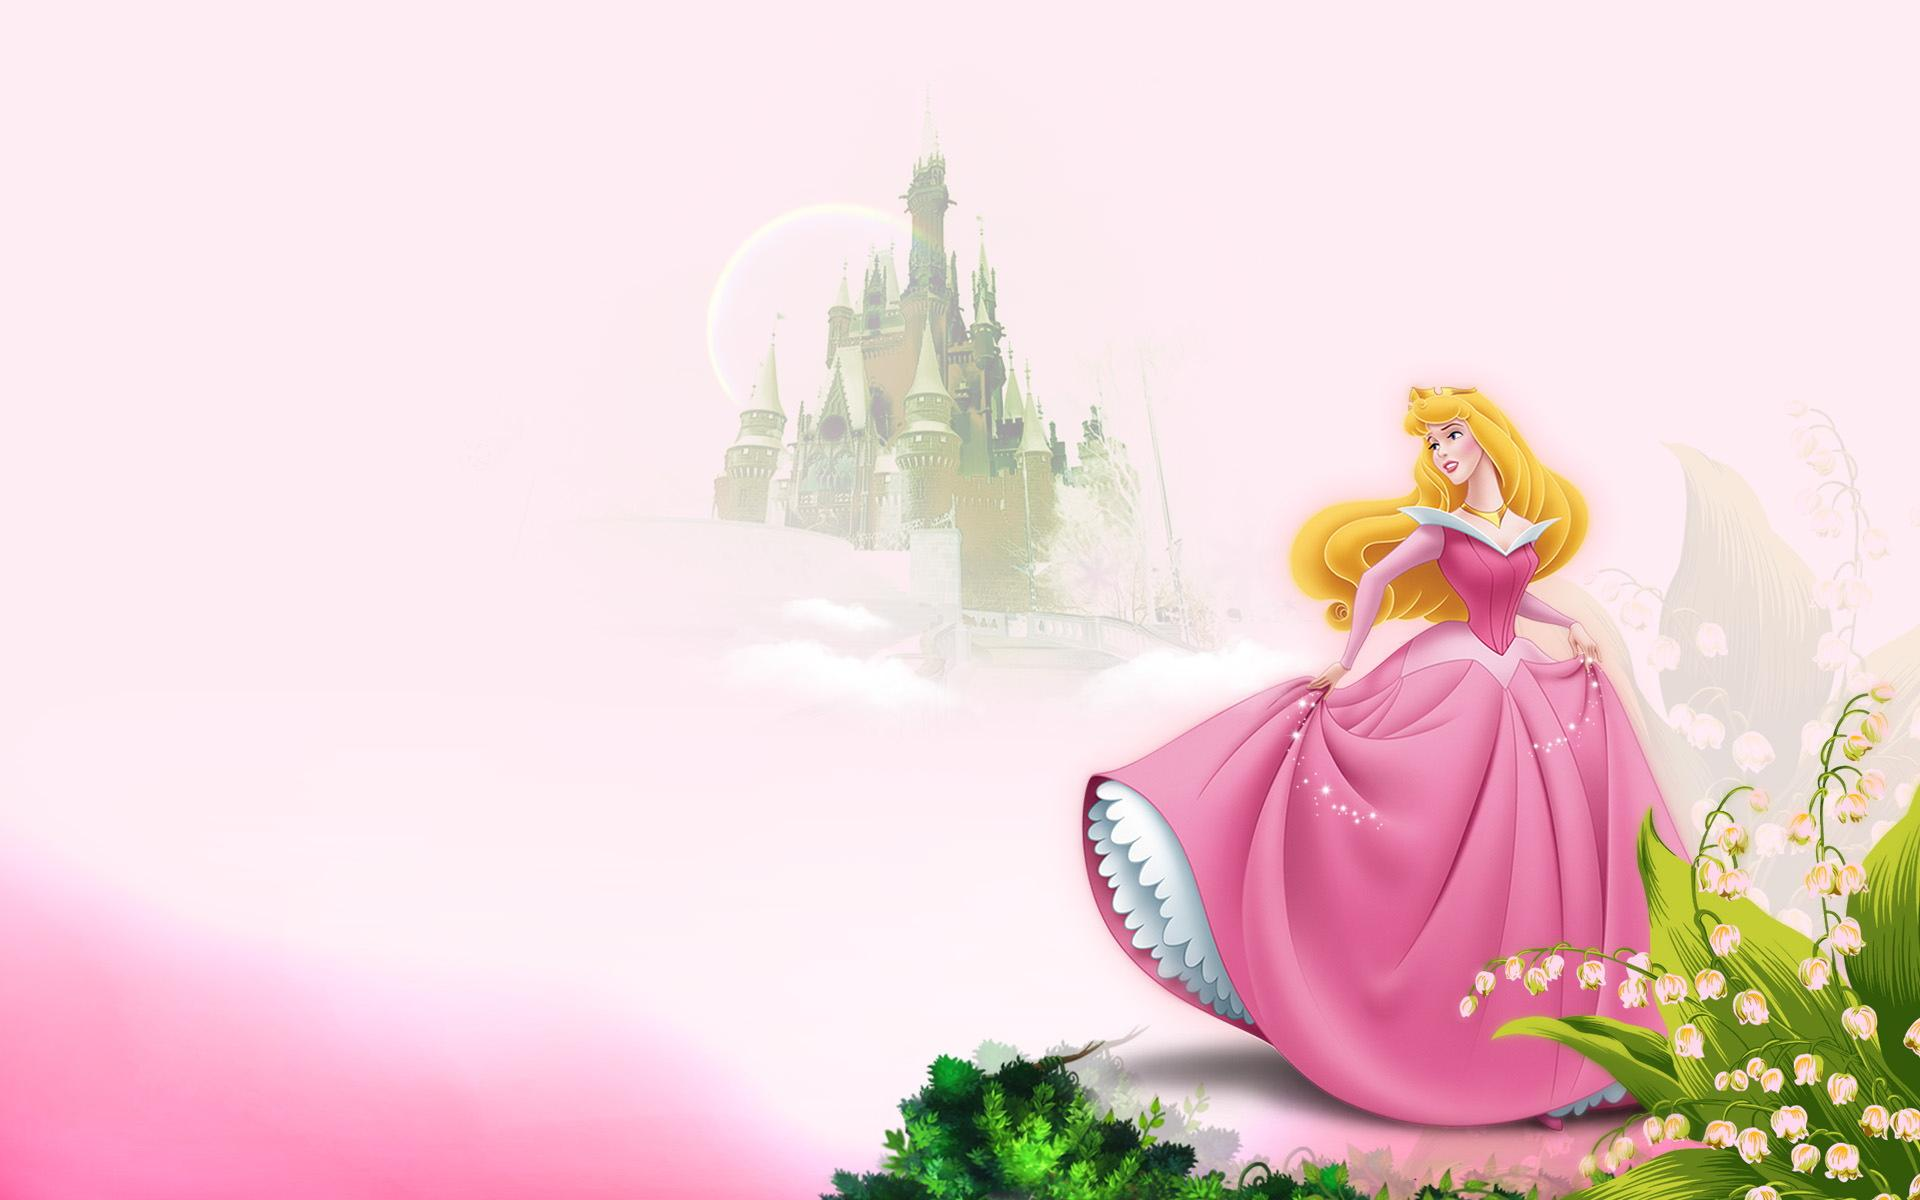 Disney Princess Wallpapers  Best Wallpapers 1920x1200